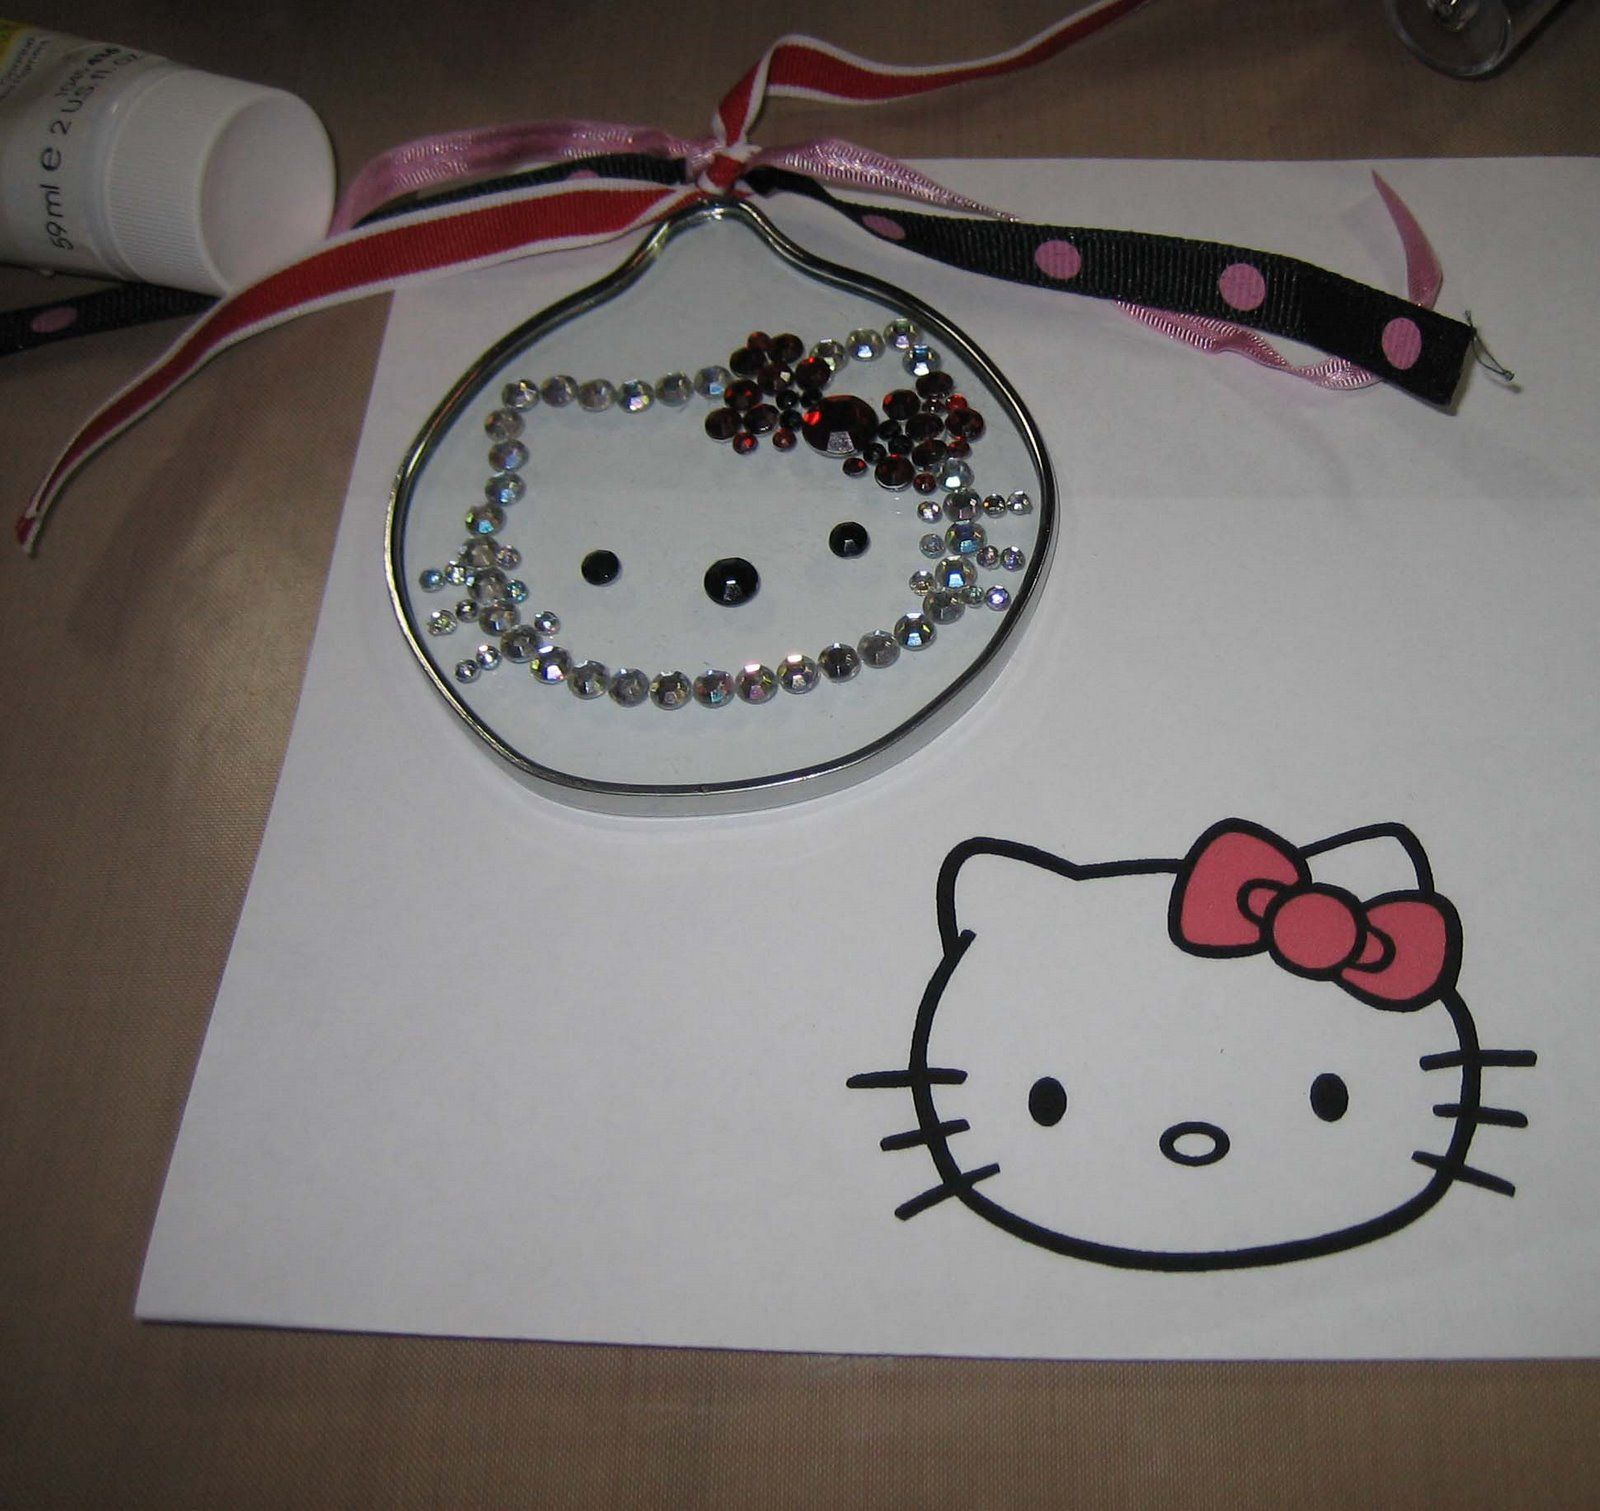 Hello Kitty Christmas Ornament used a print out from the